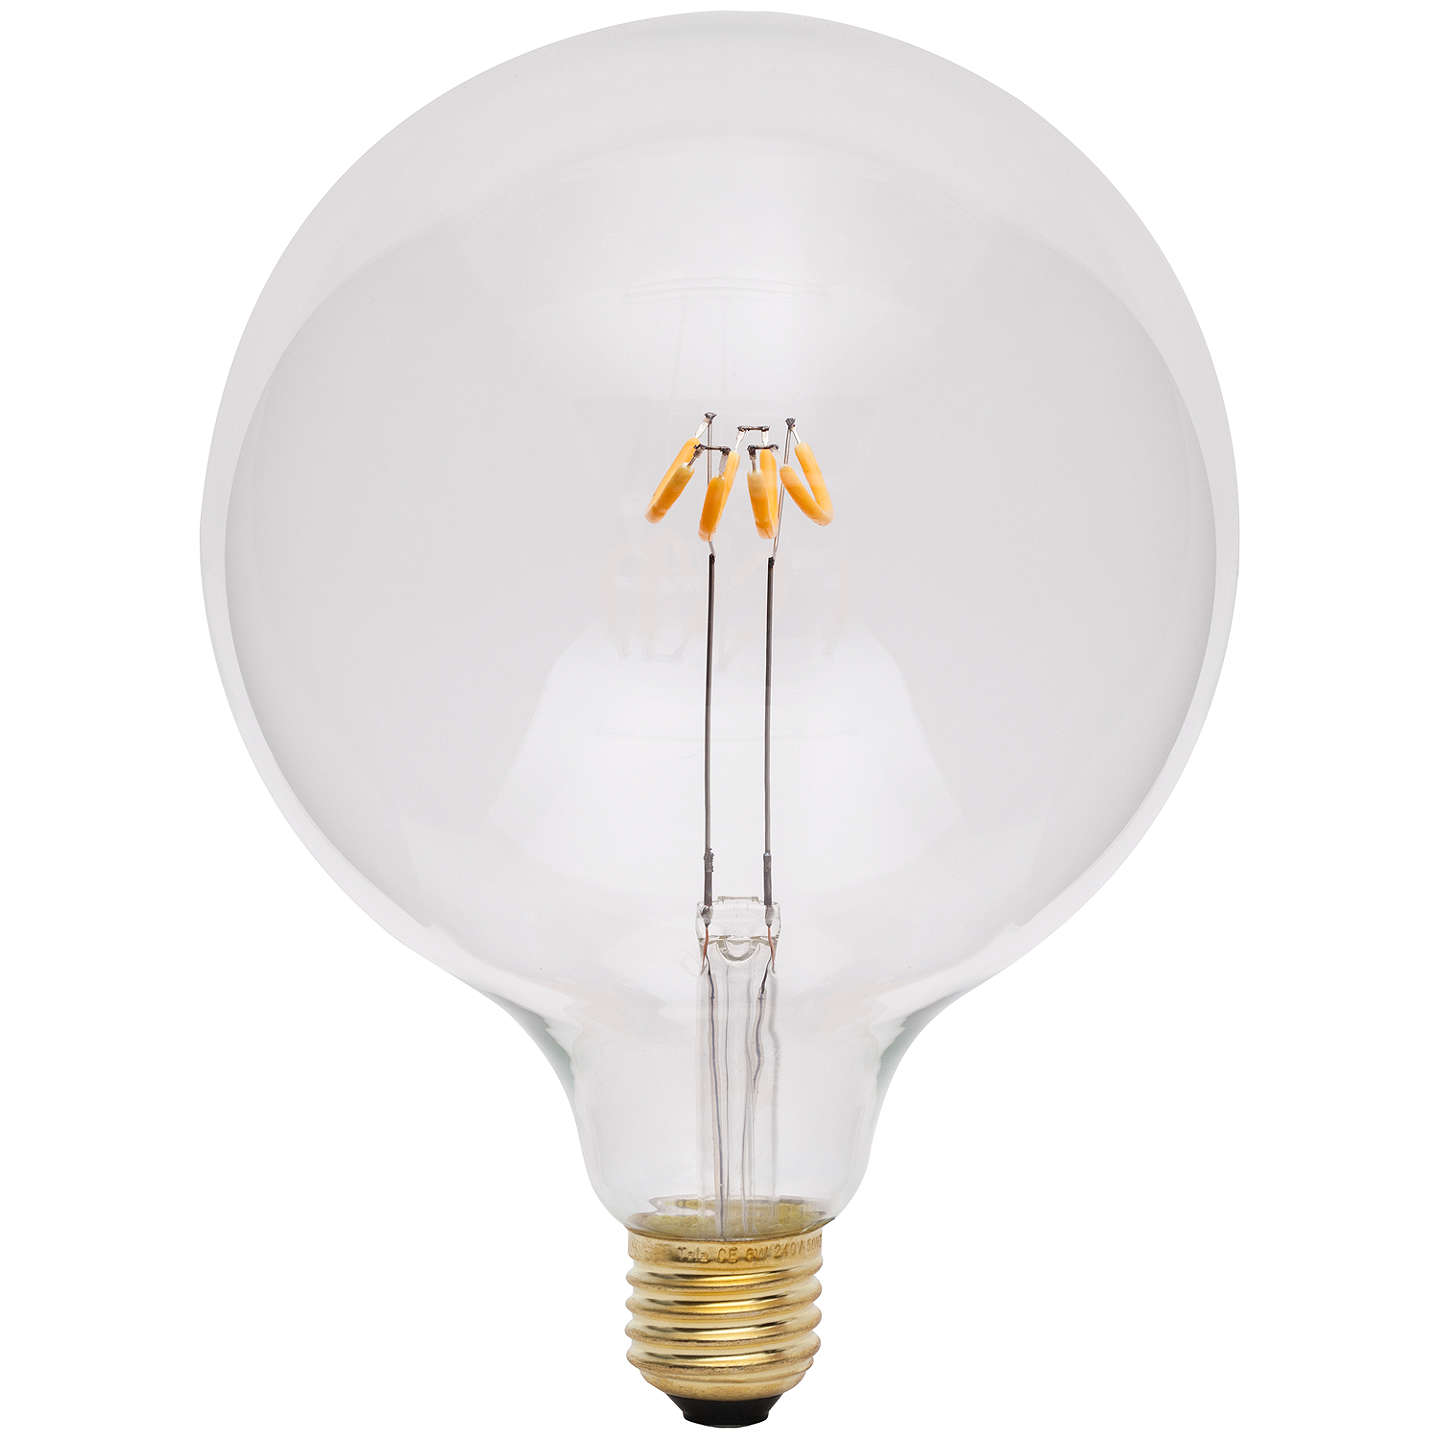 BuyTala LED Unum 3W ES LED Globe Bulb, Clear, Dimmable Online at johnlewis.com